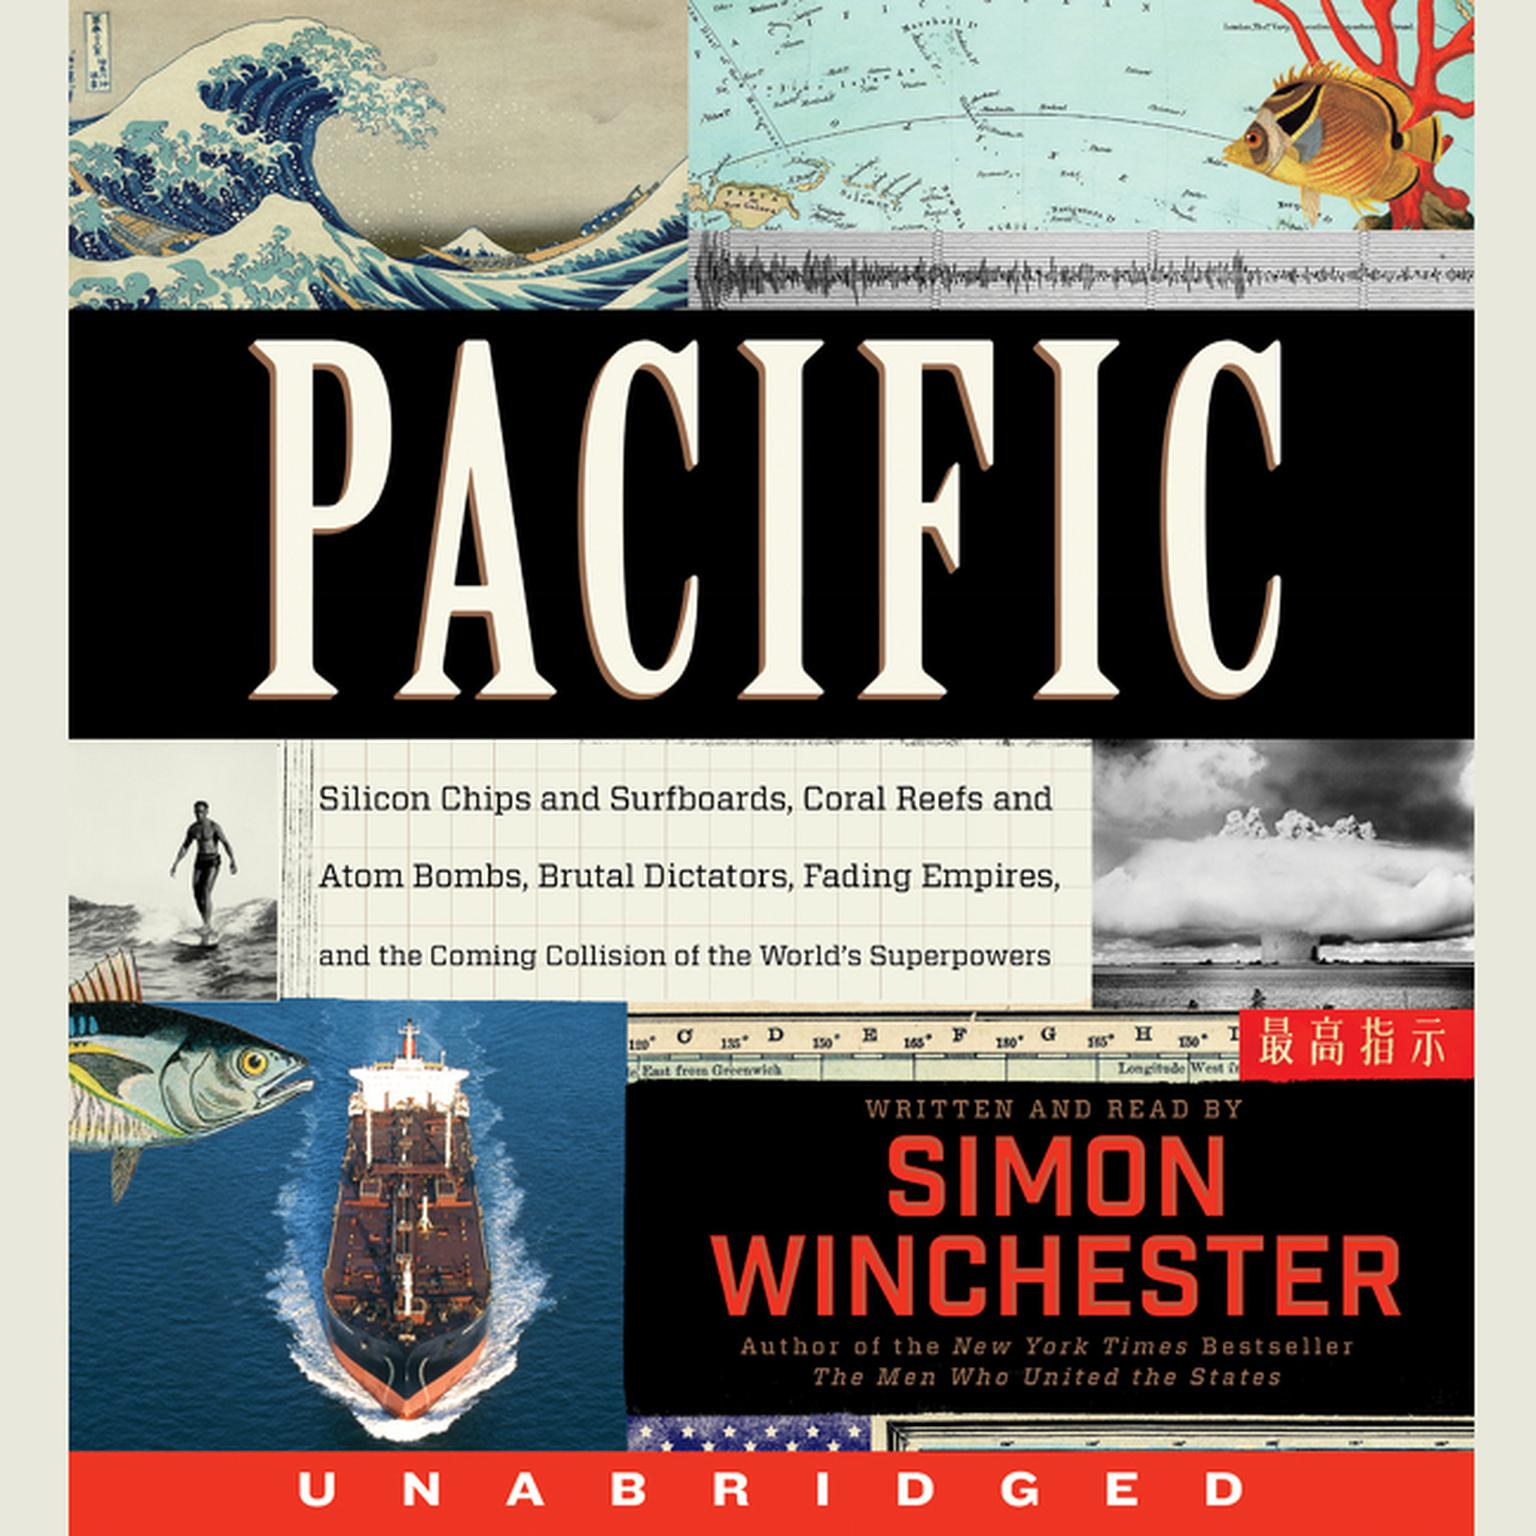 Printable Pacific: Silicon Chips and Surfboards, Coral Reefs and Atom Bombs, Brutal Dictators, Fading Empires, and the Coming Collision of the World's Superpowers Audiobook Cover Art